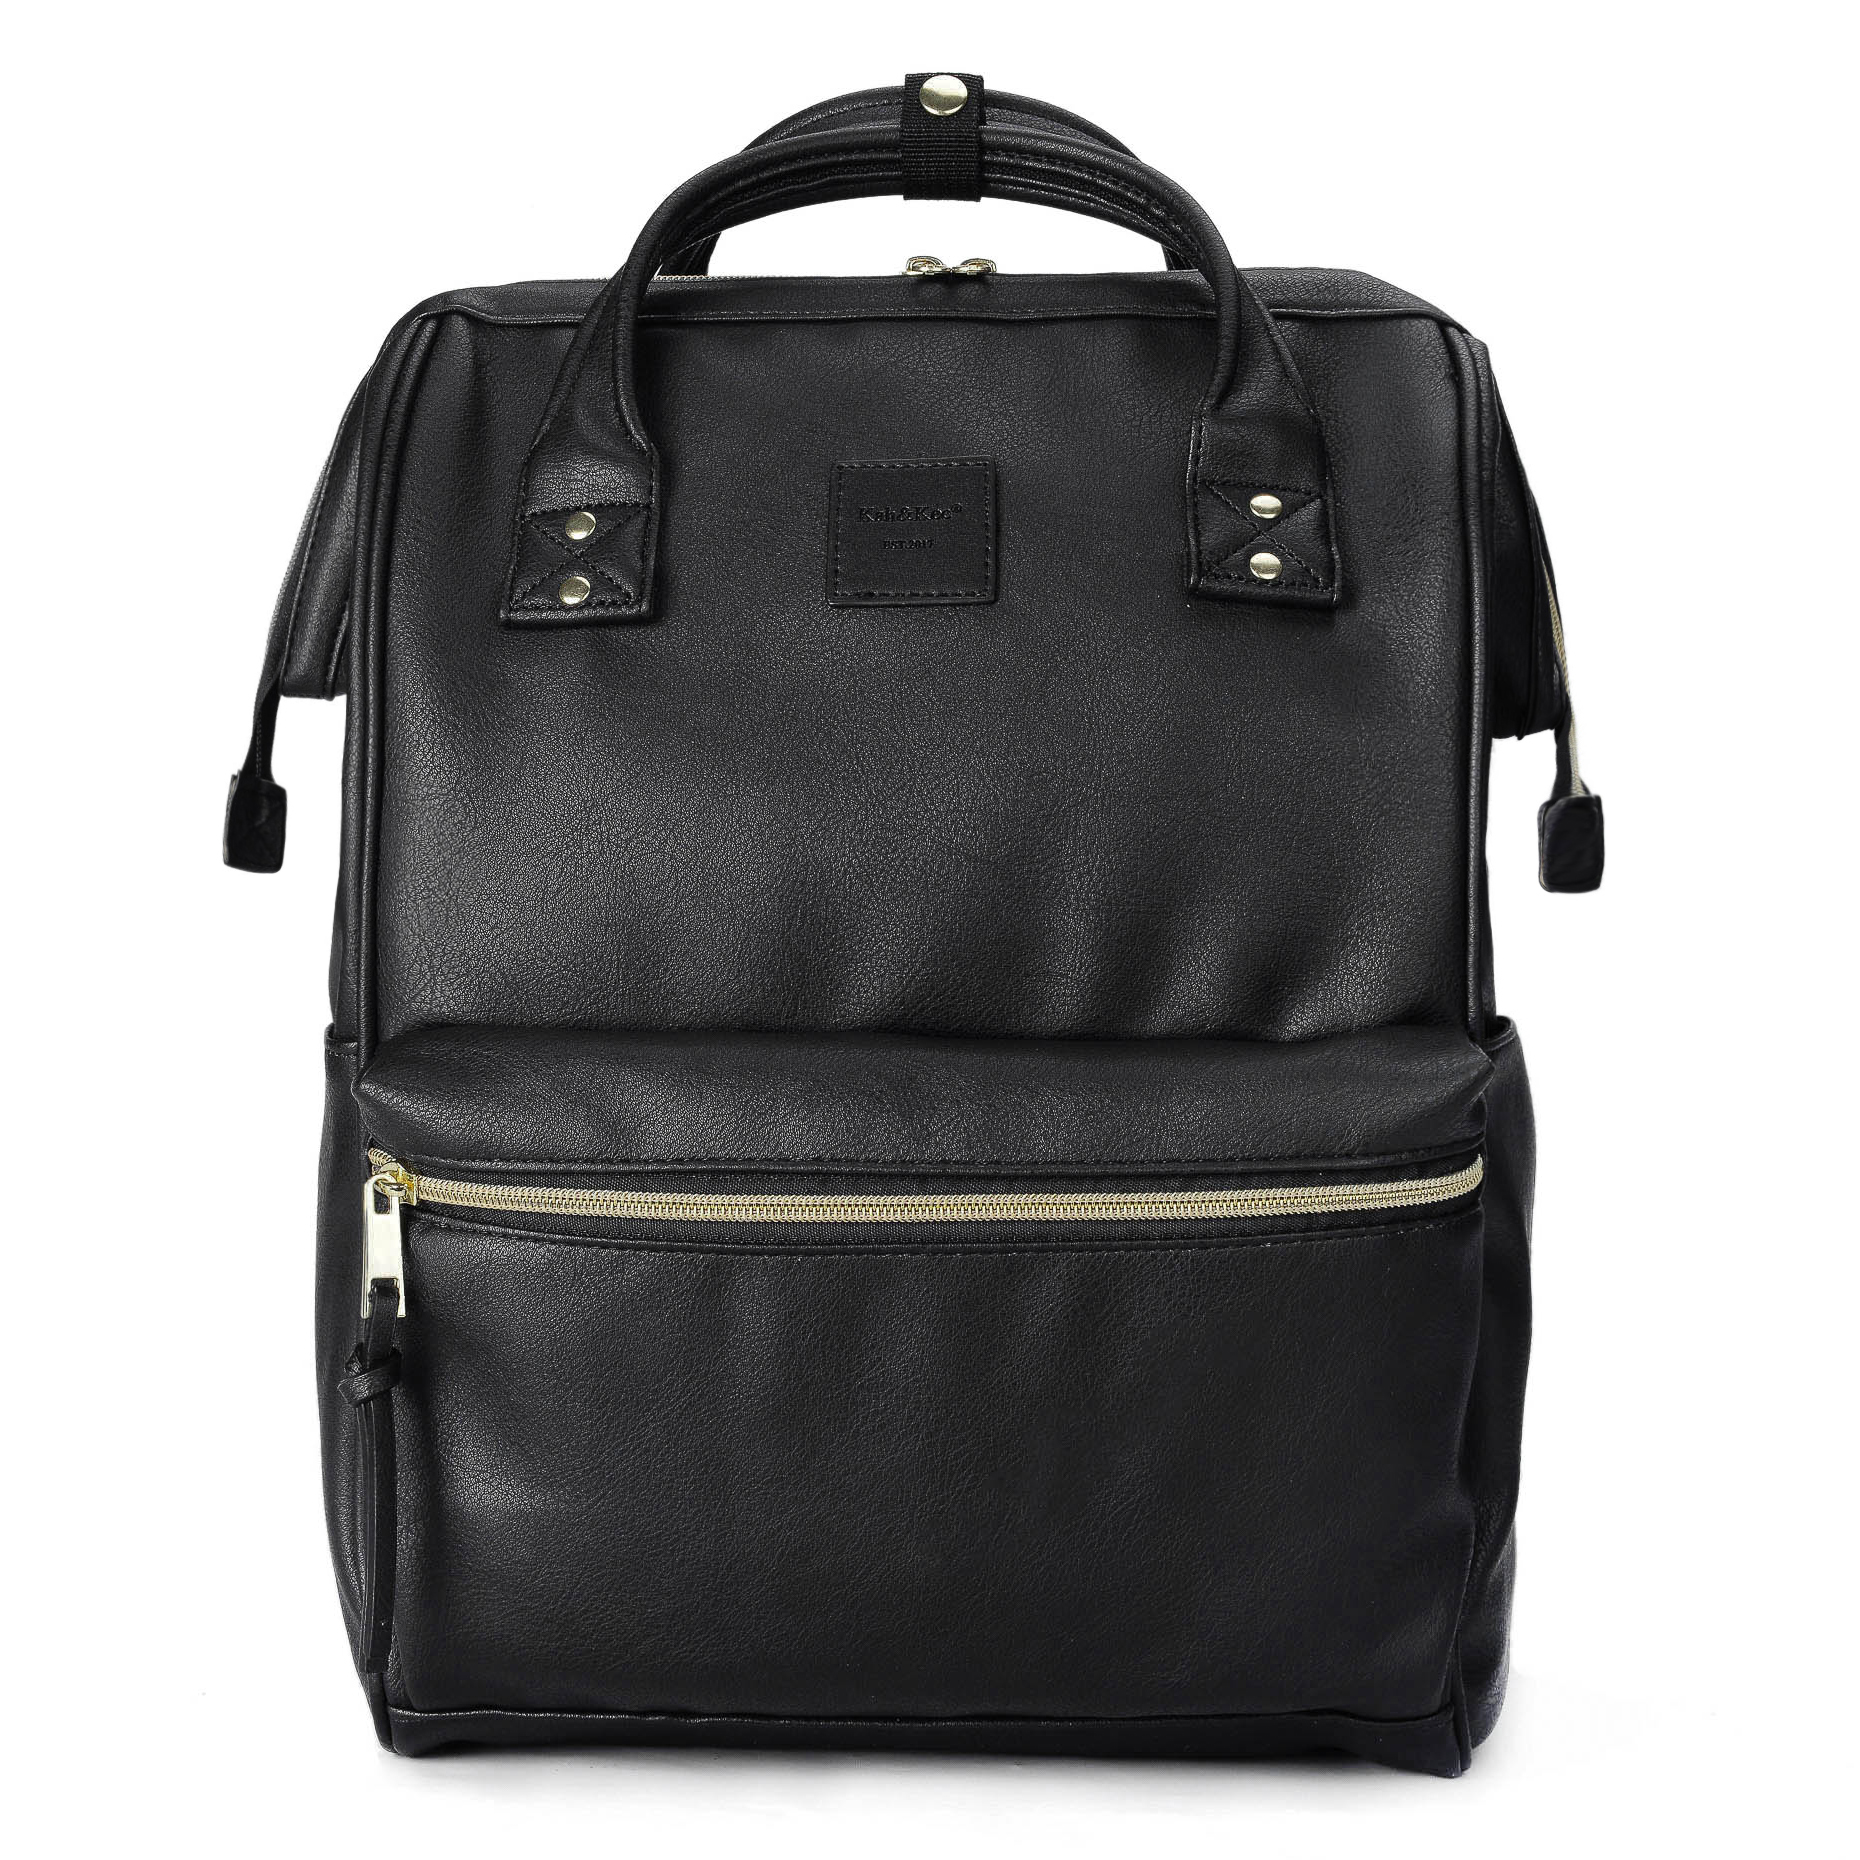 Kah&Kee Leather Backpack Diaper Bag With Laptop Compartment Travel School For Women Man